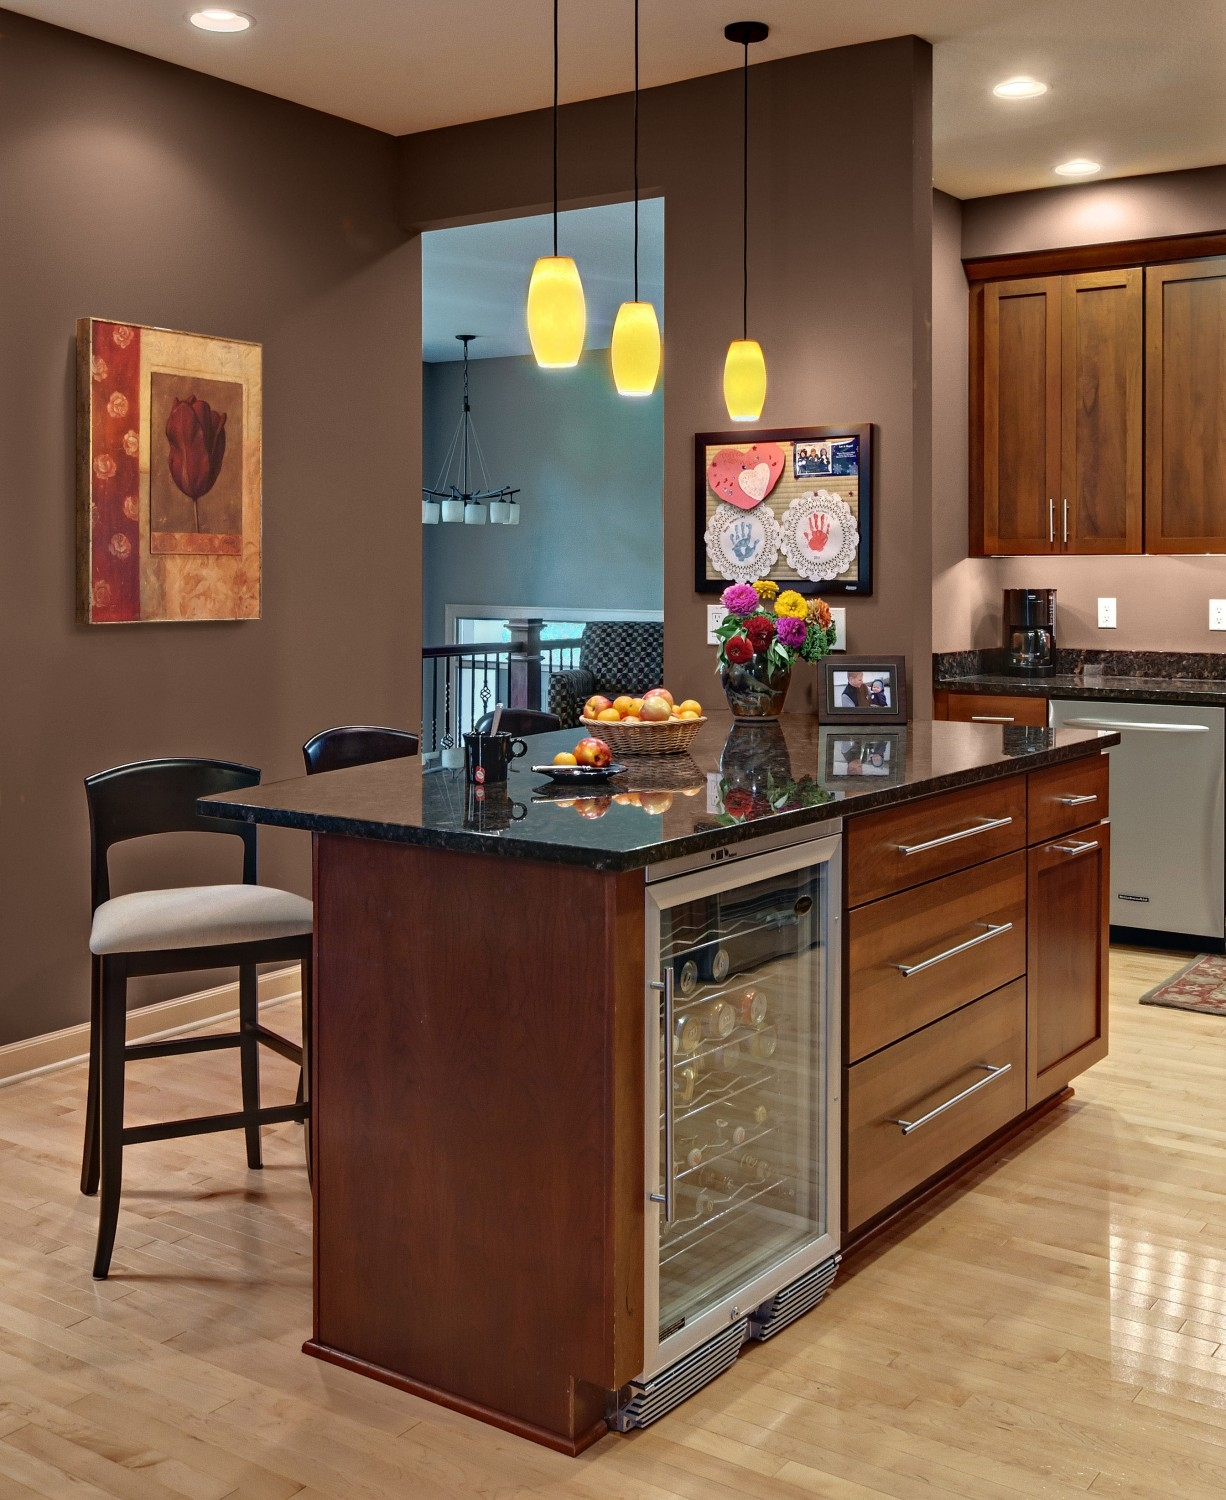 Kitchen Island with Wine Refrigerator